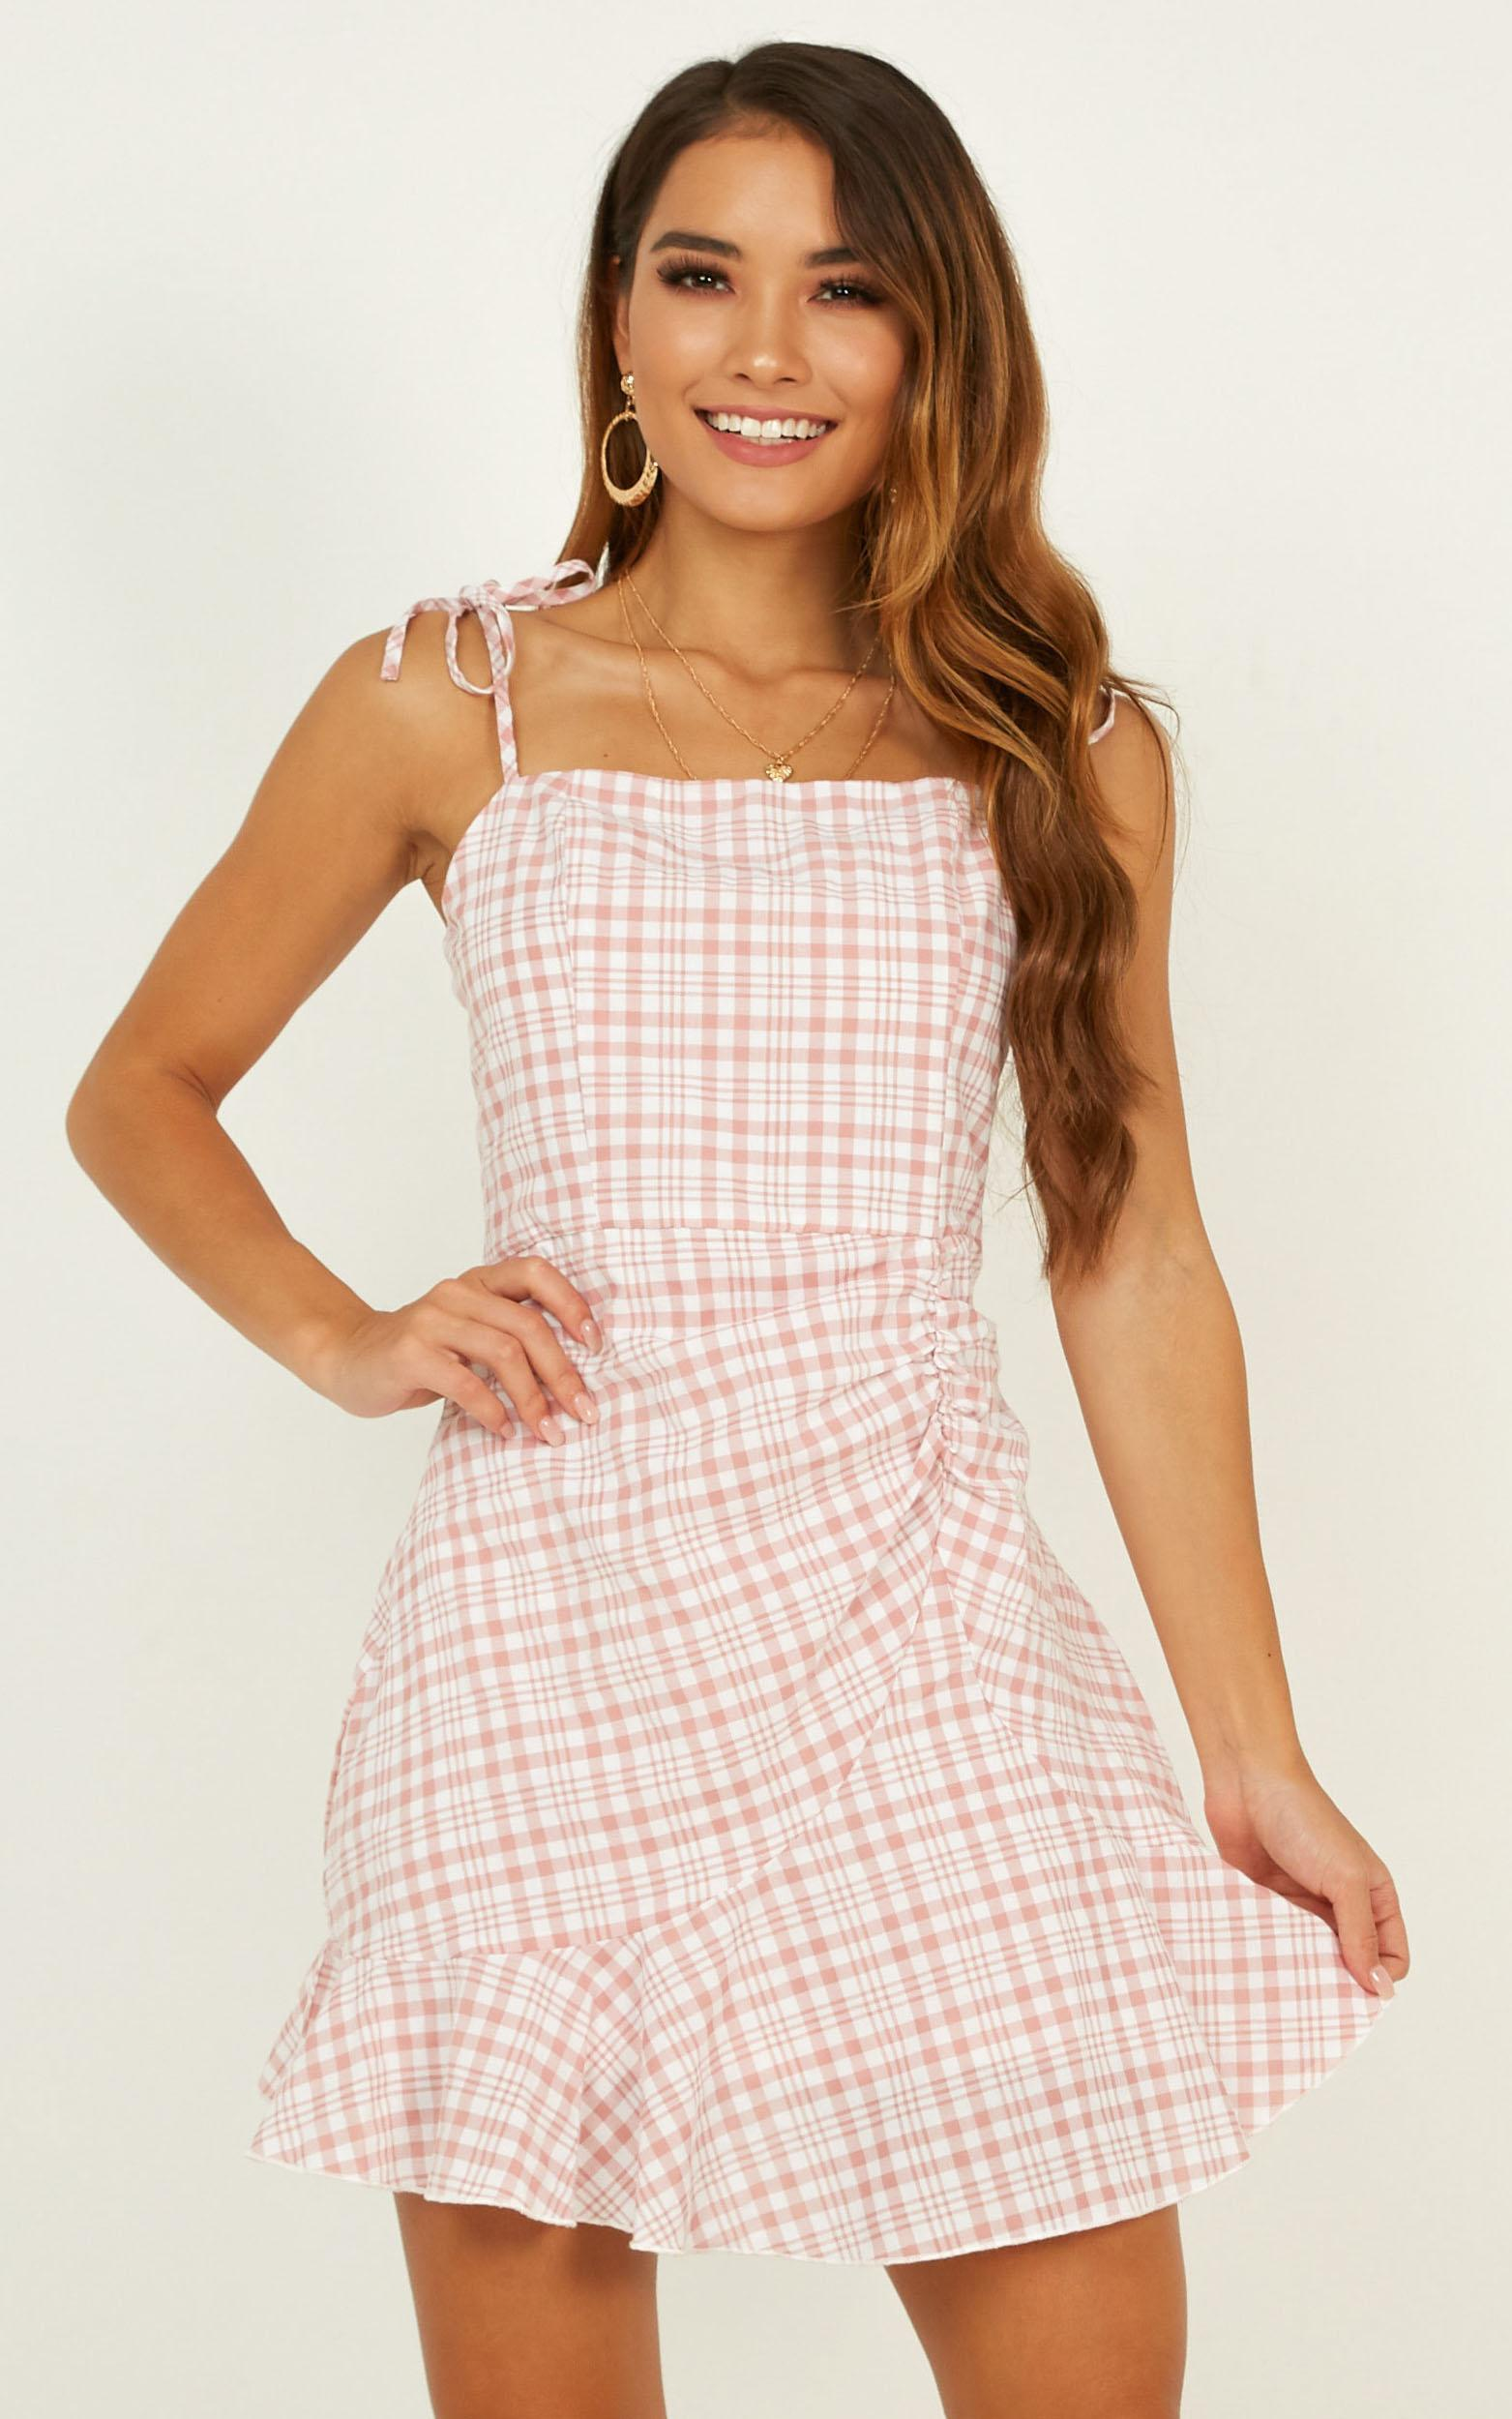 Adventure Driven Dress In Blush Check - 4 (XXS), Blush, hi-res image number null